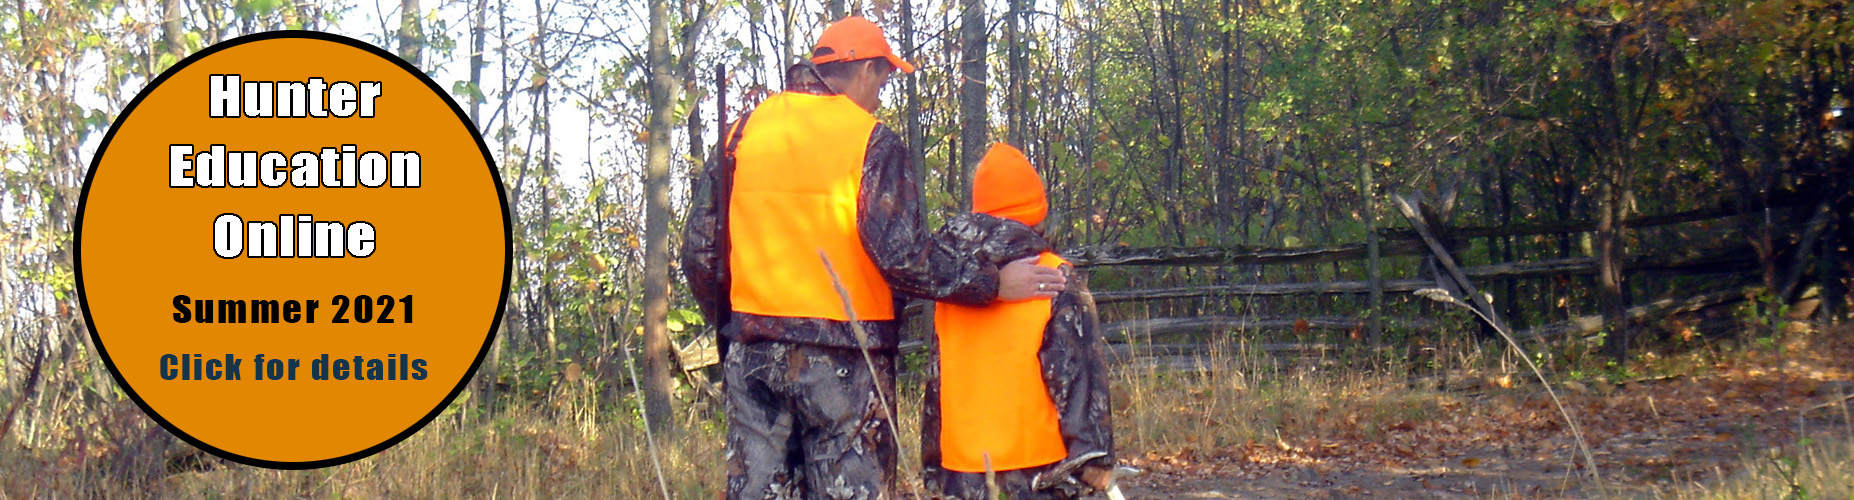 Hunter Education Online - Summer 2021 | Ontario Hunter Education Program